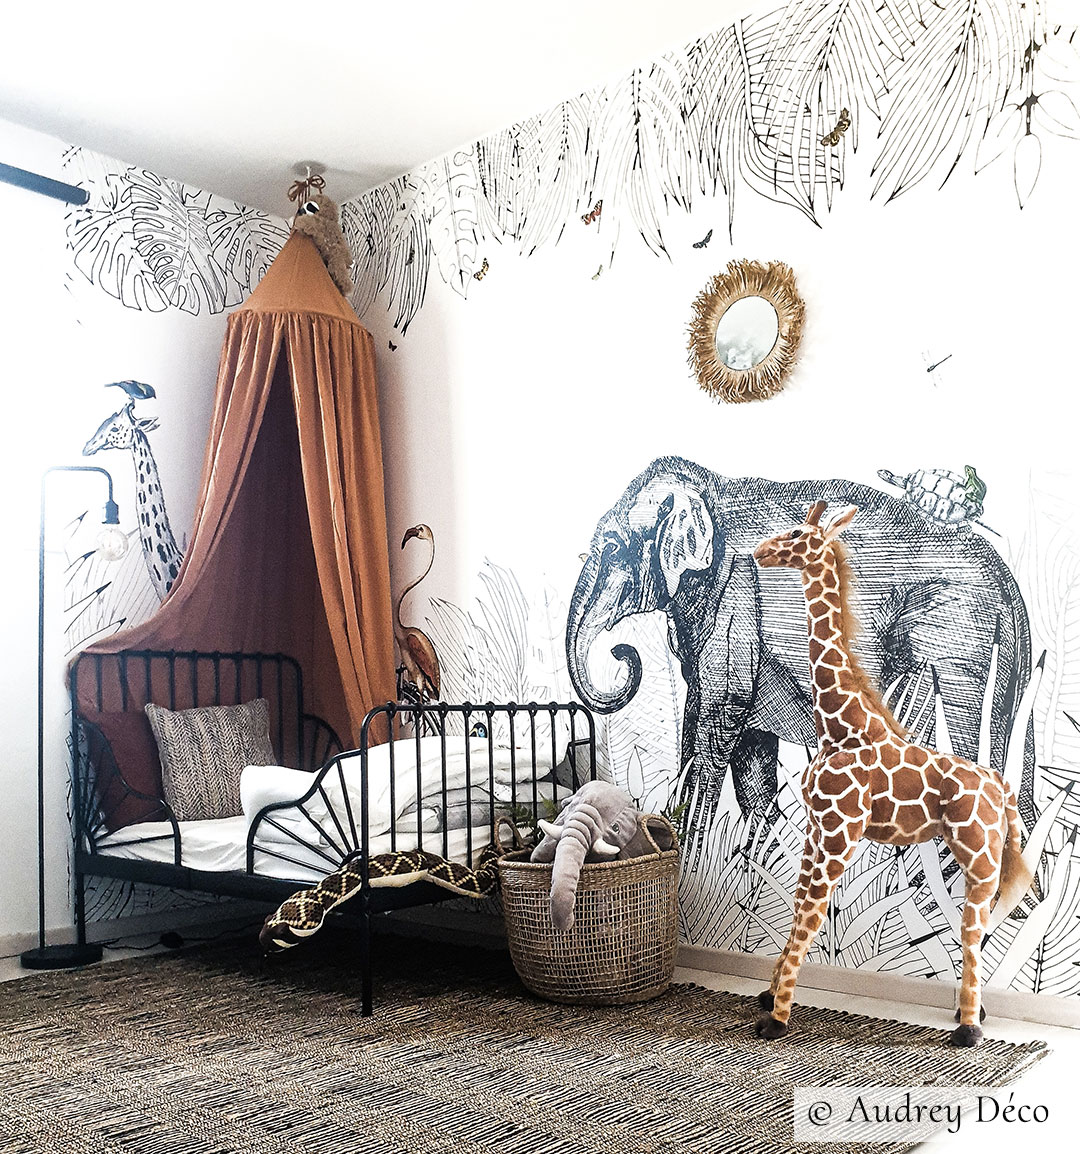 Wallpaper for children's room - Animals - Metrozoo from Les Dominotiers - © Audrey Deco